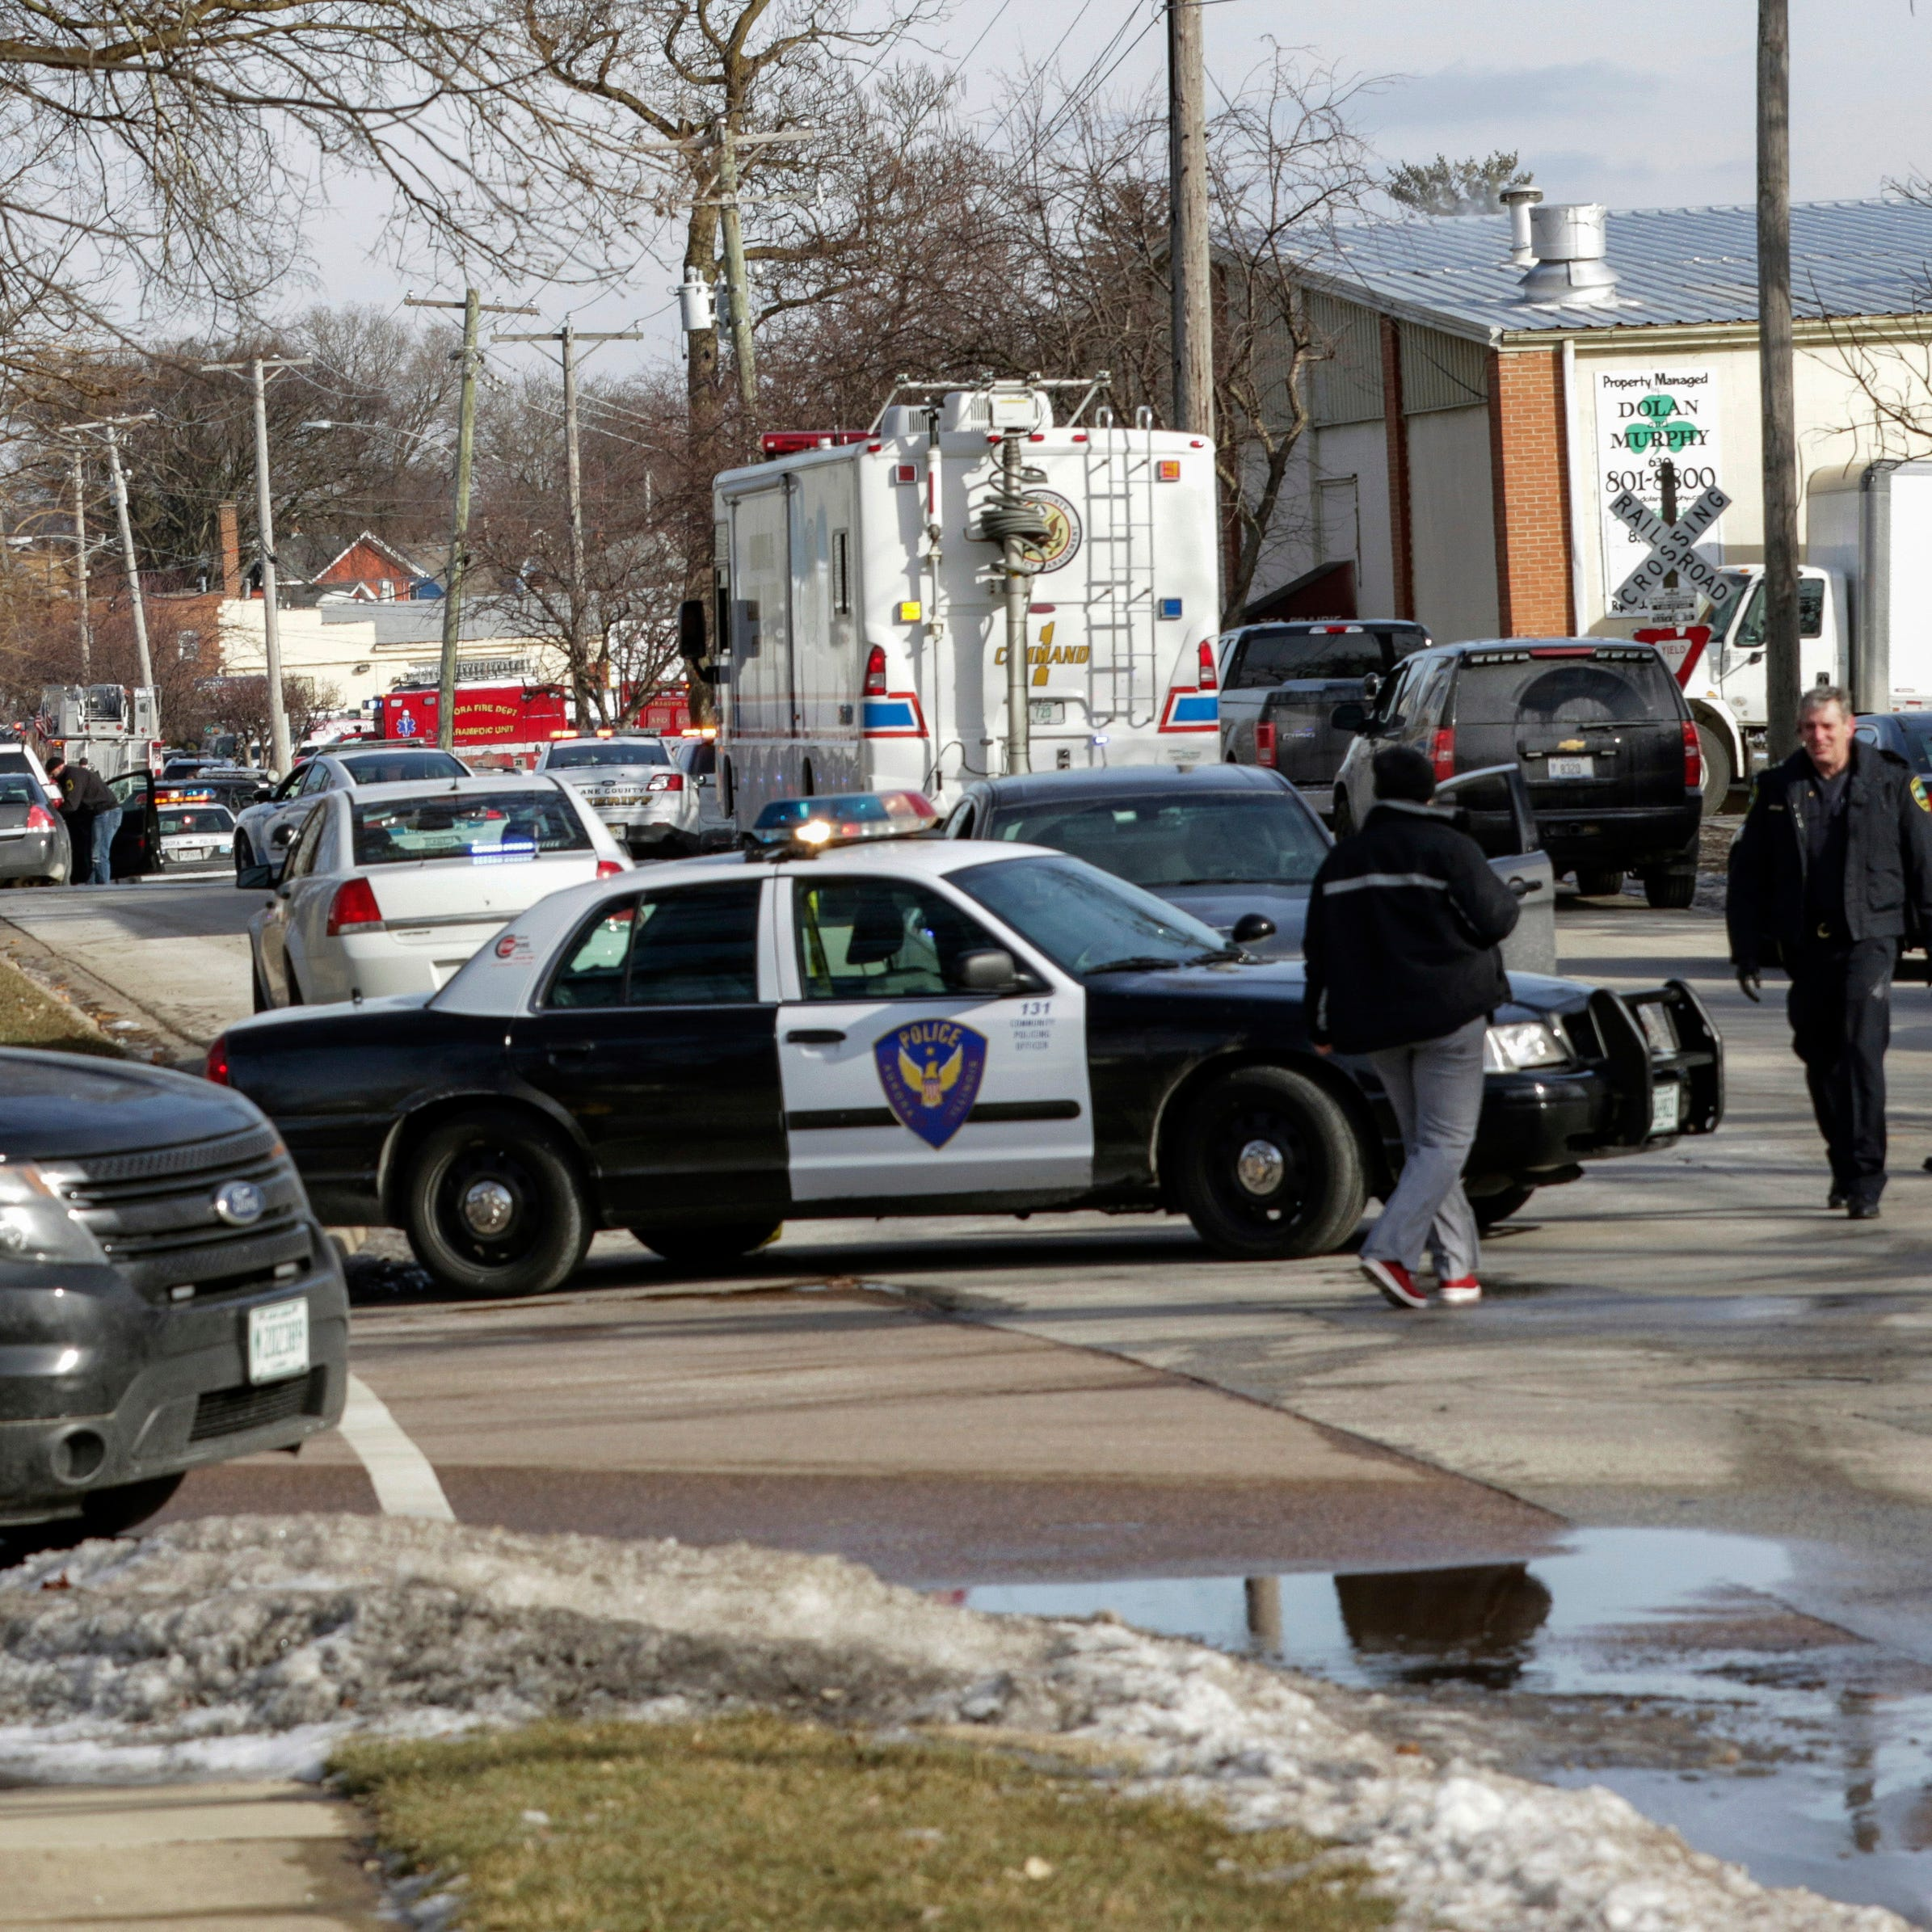 Officials: 1 dead, 4 police wounded in Illinois shooting